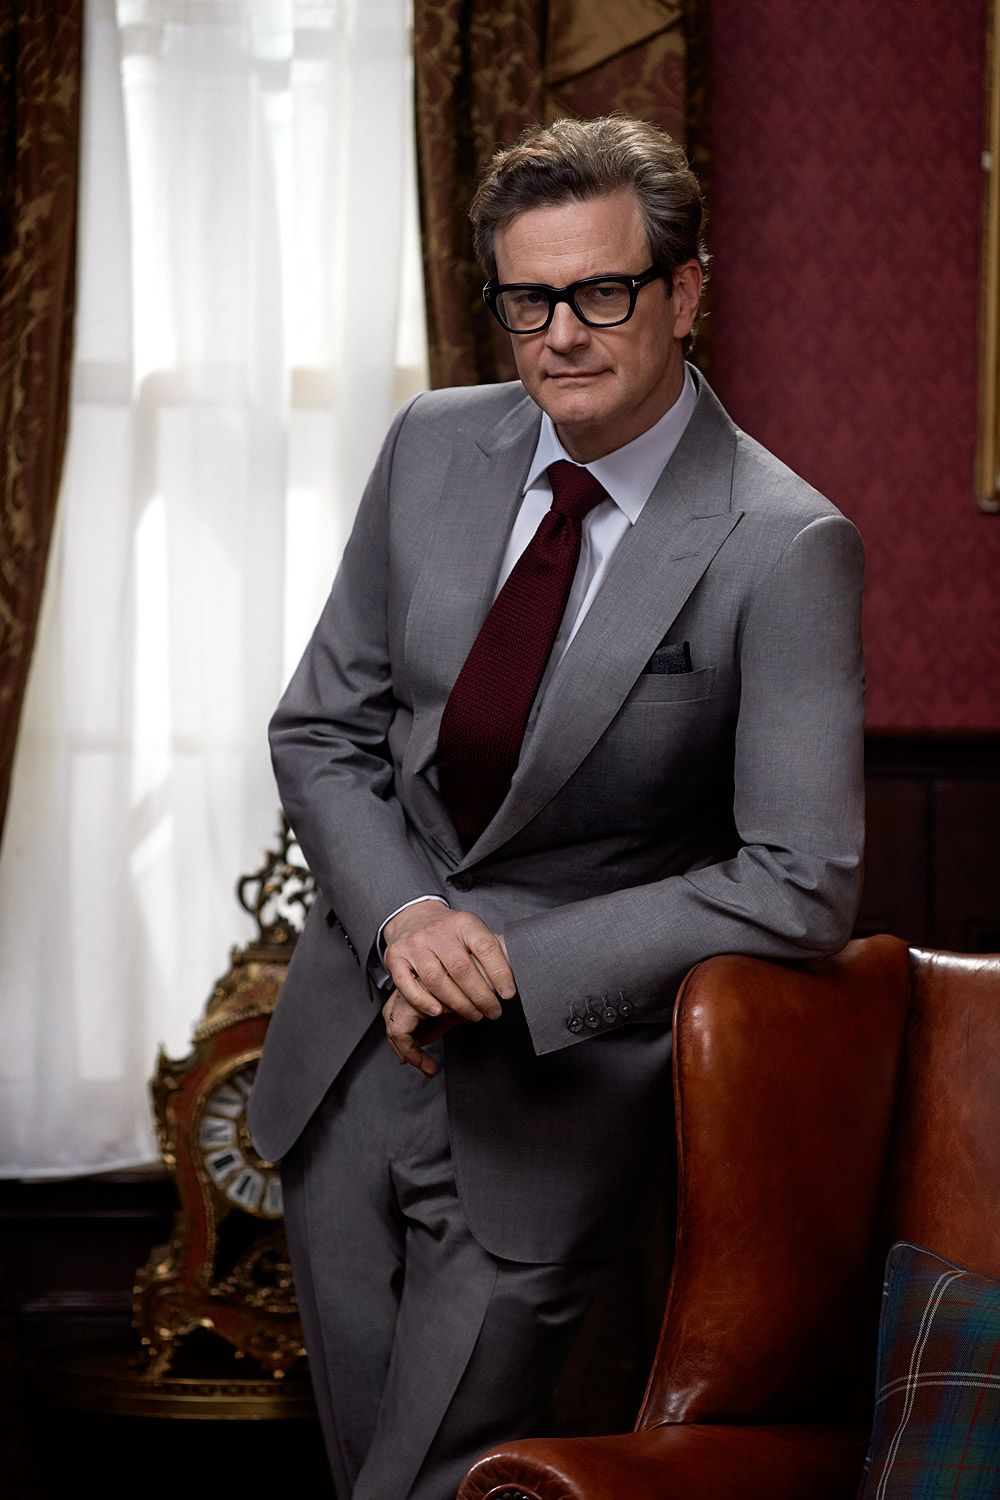 Kingsman The Secret Service Colin Firth Colin Firth Colin Firth Kingsman Firth